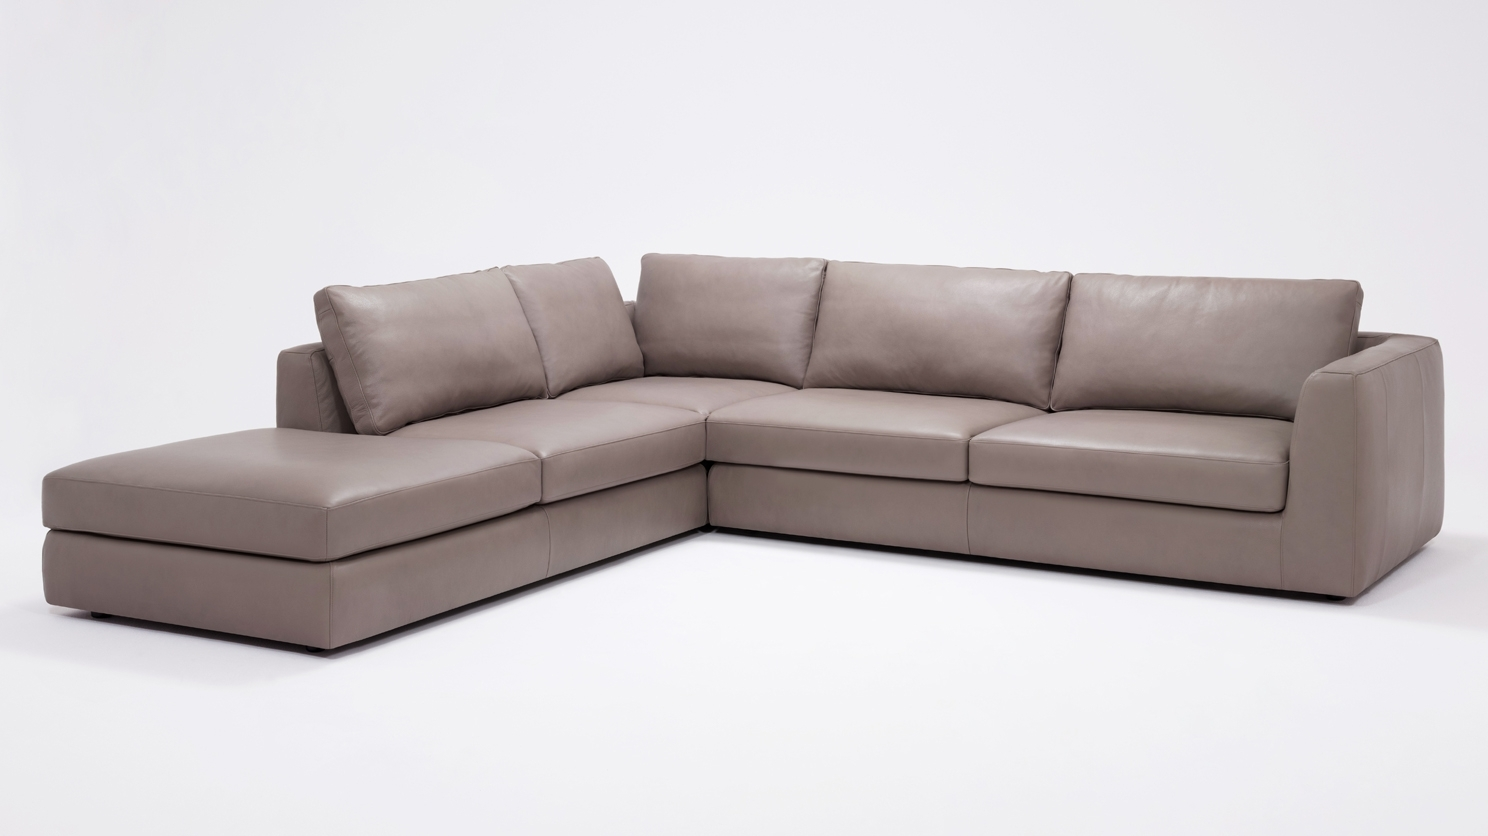 Cello 3 Piece Sectional Sofa With Backless Chaise – Leather (View 16 of 20)